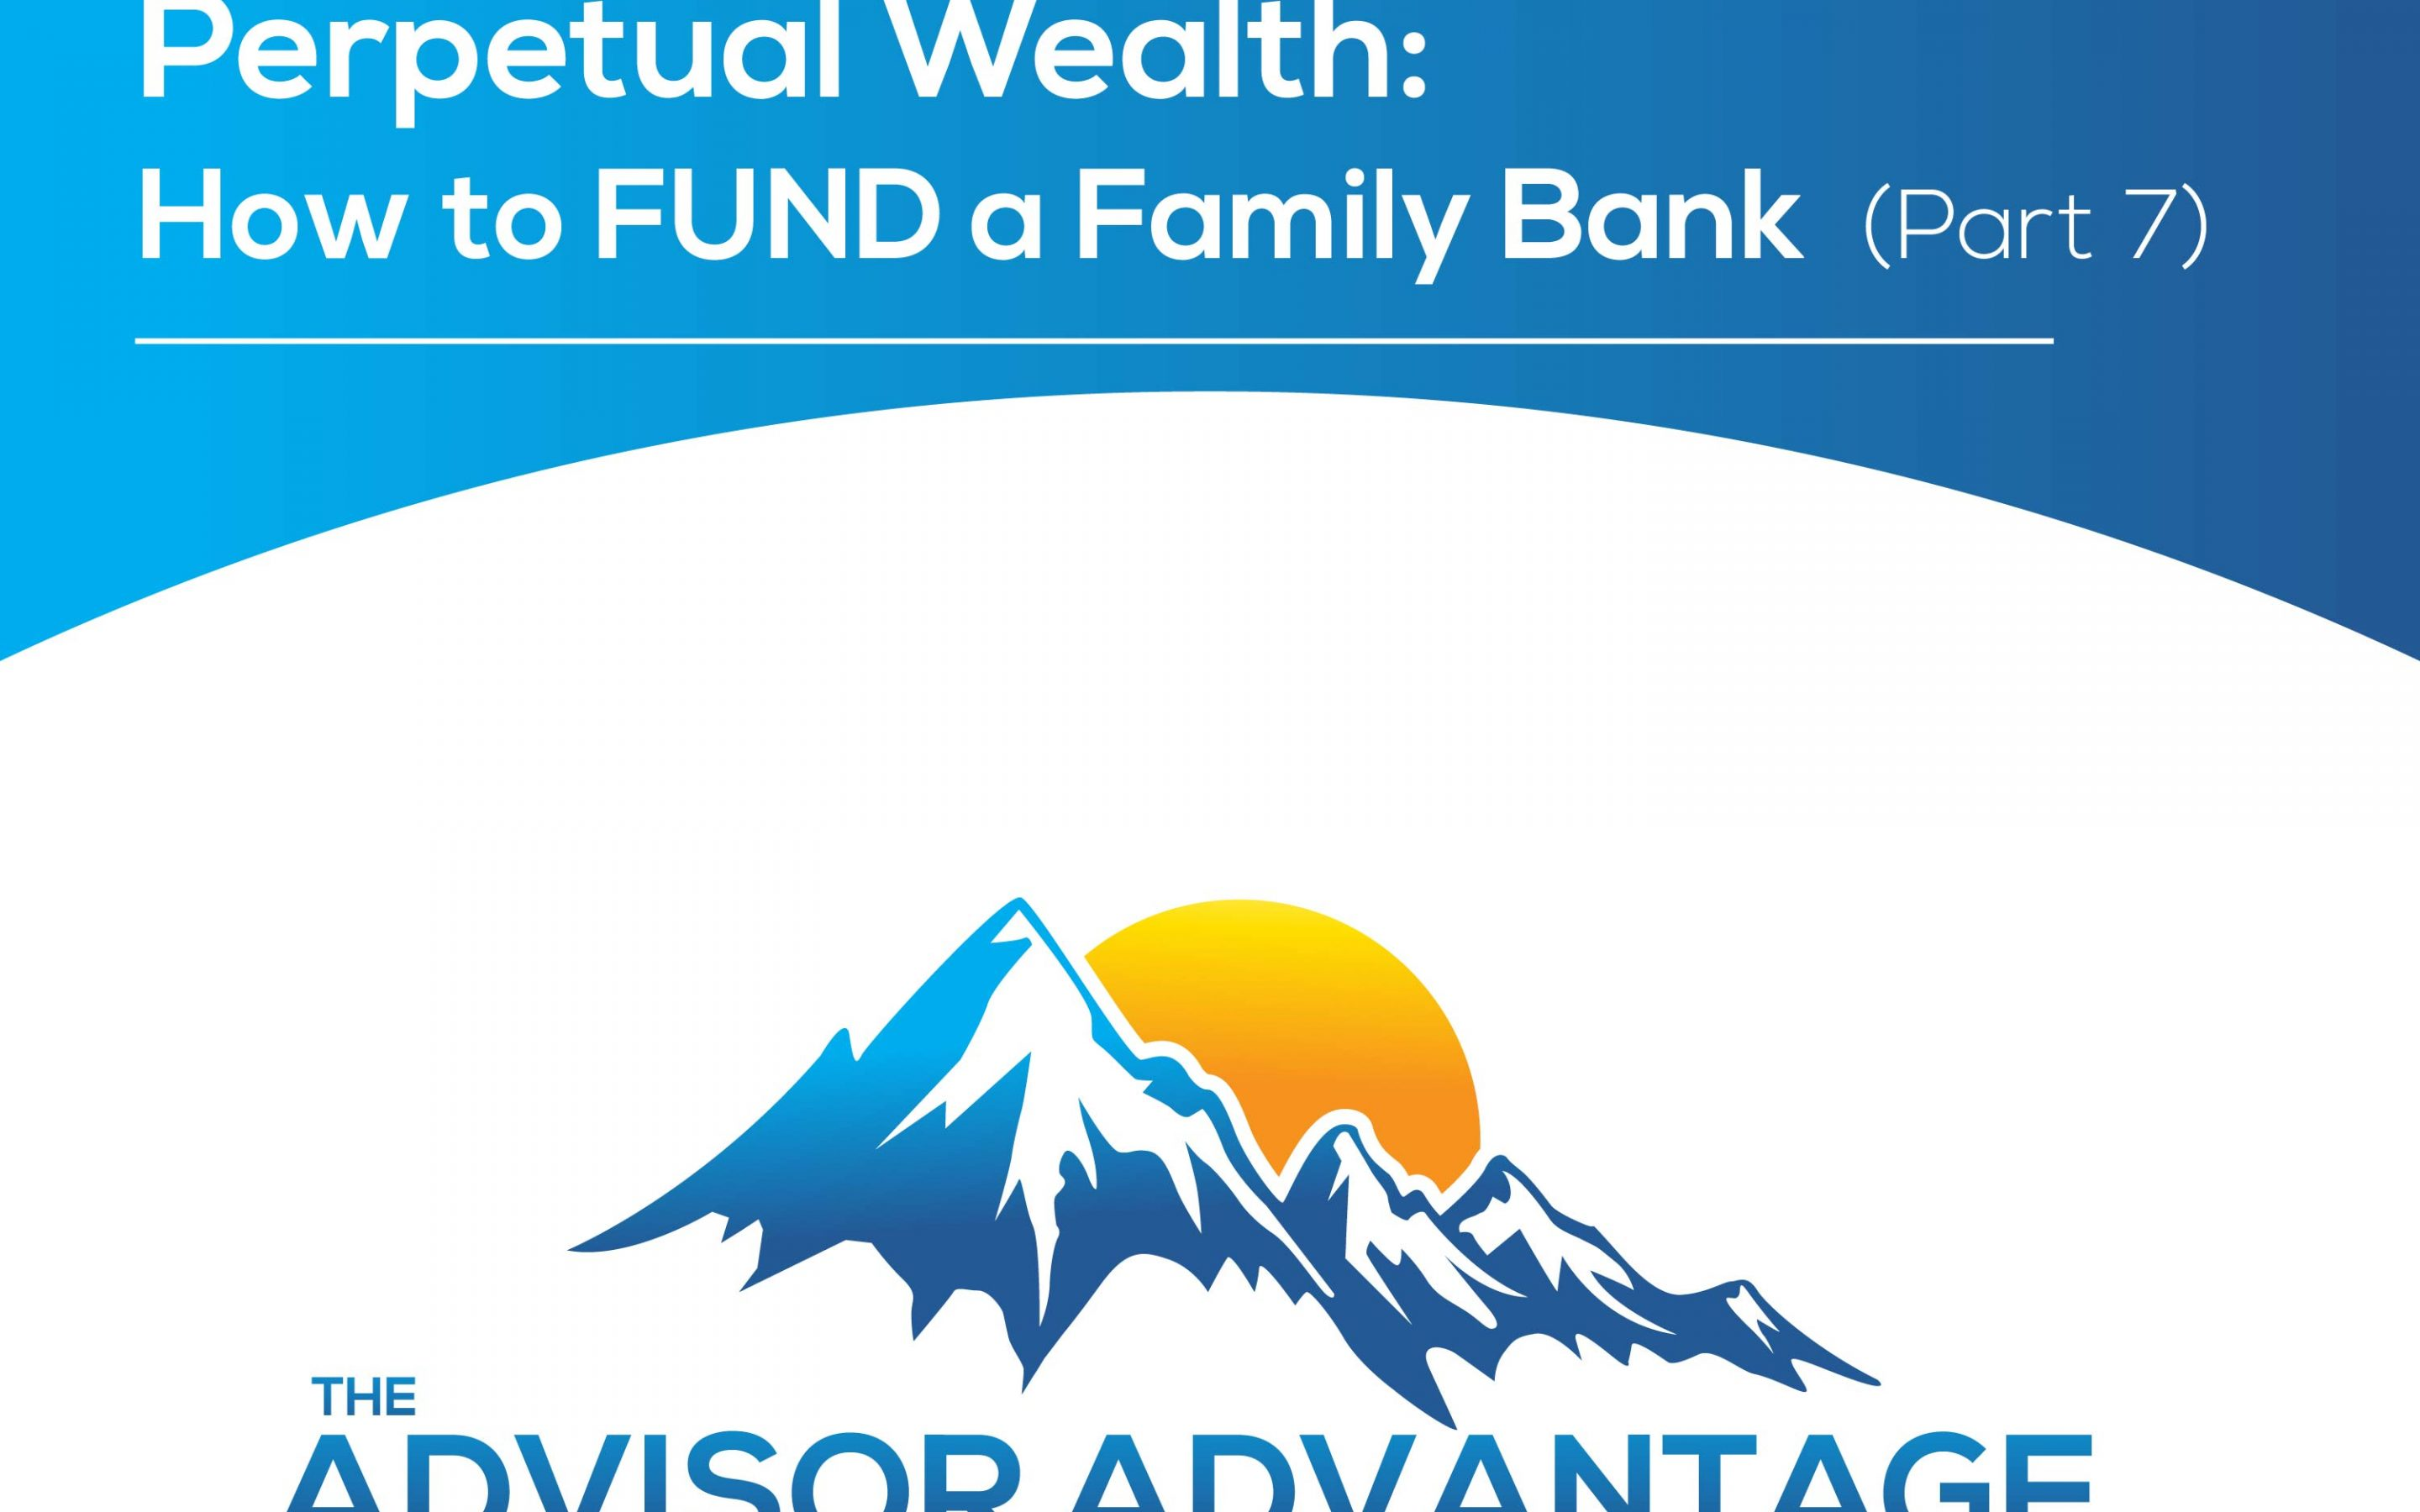 Perpetual Wealth: How to FUND a Family Bank